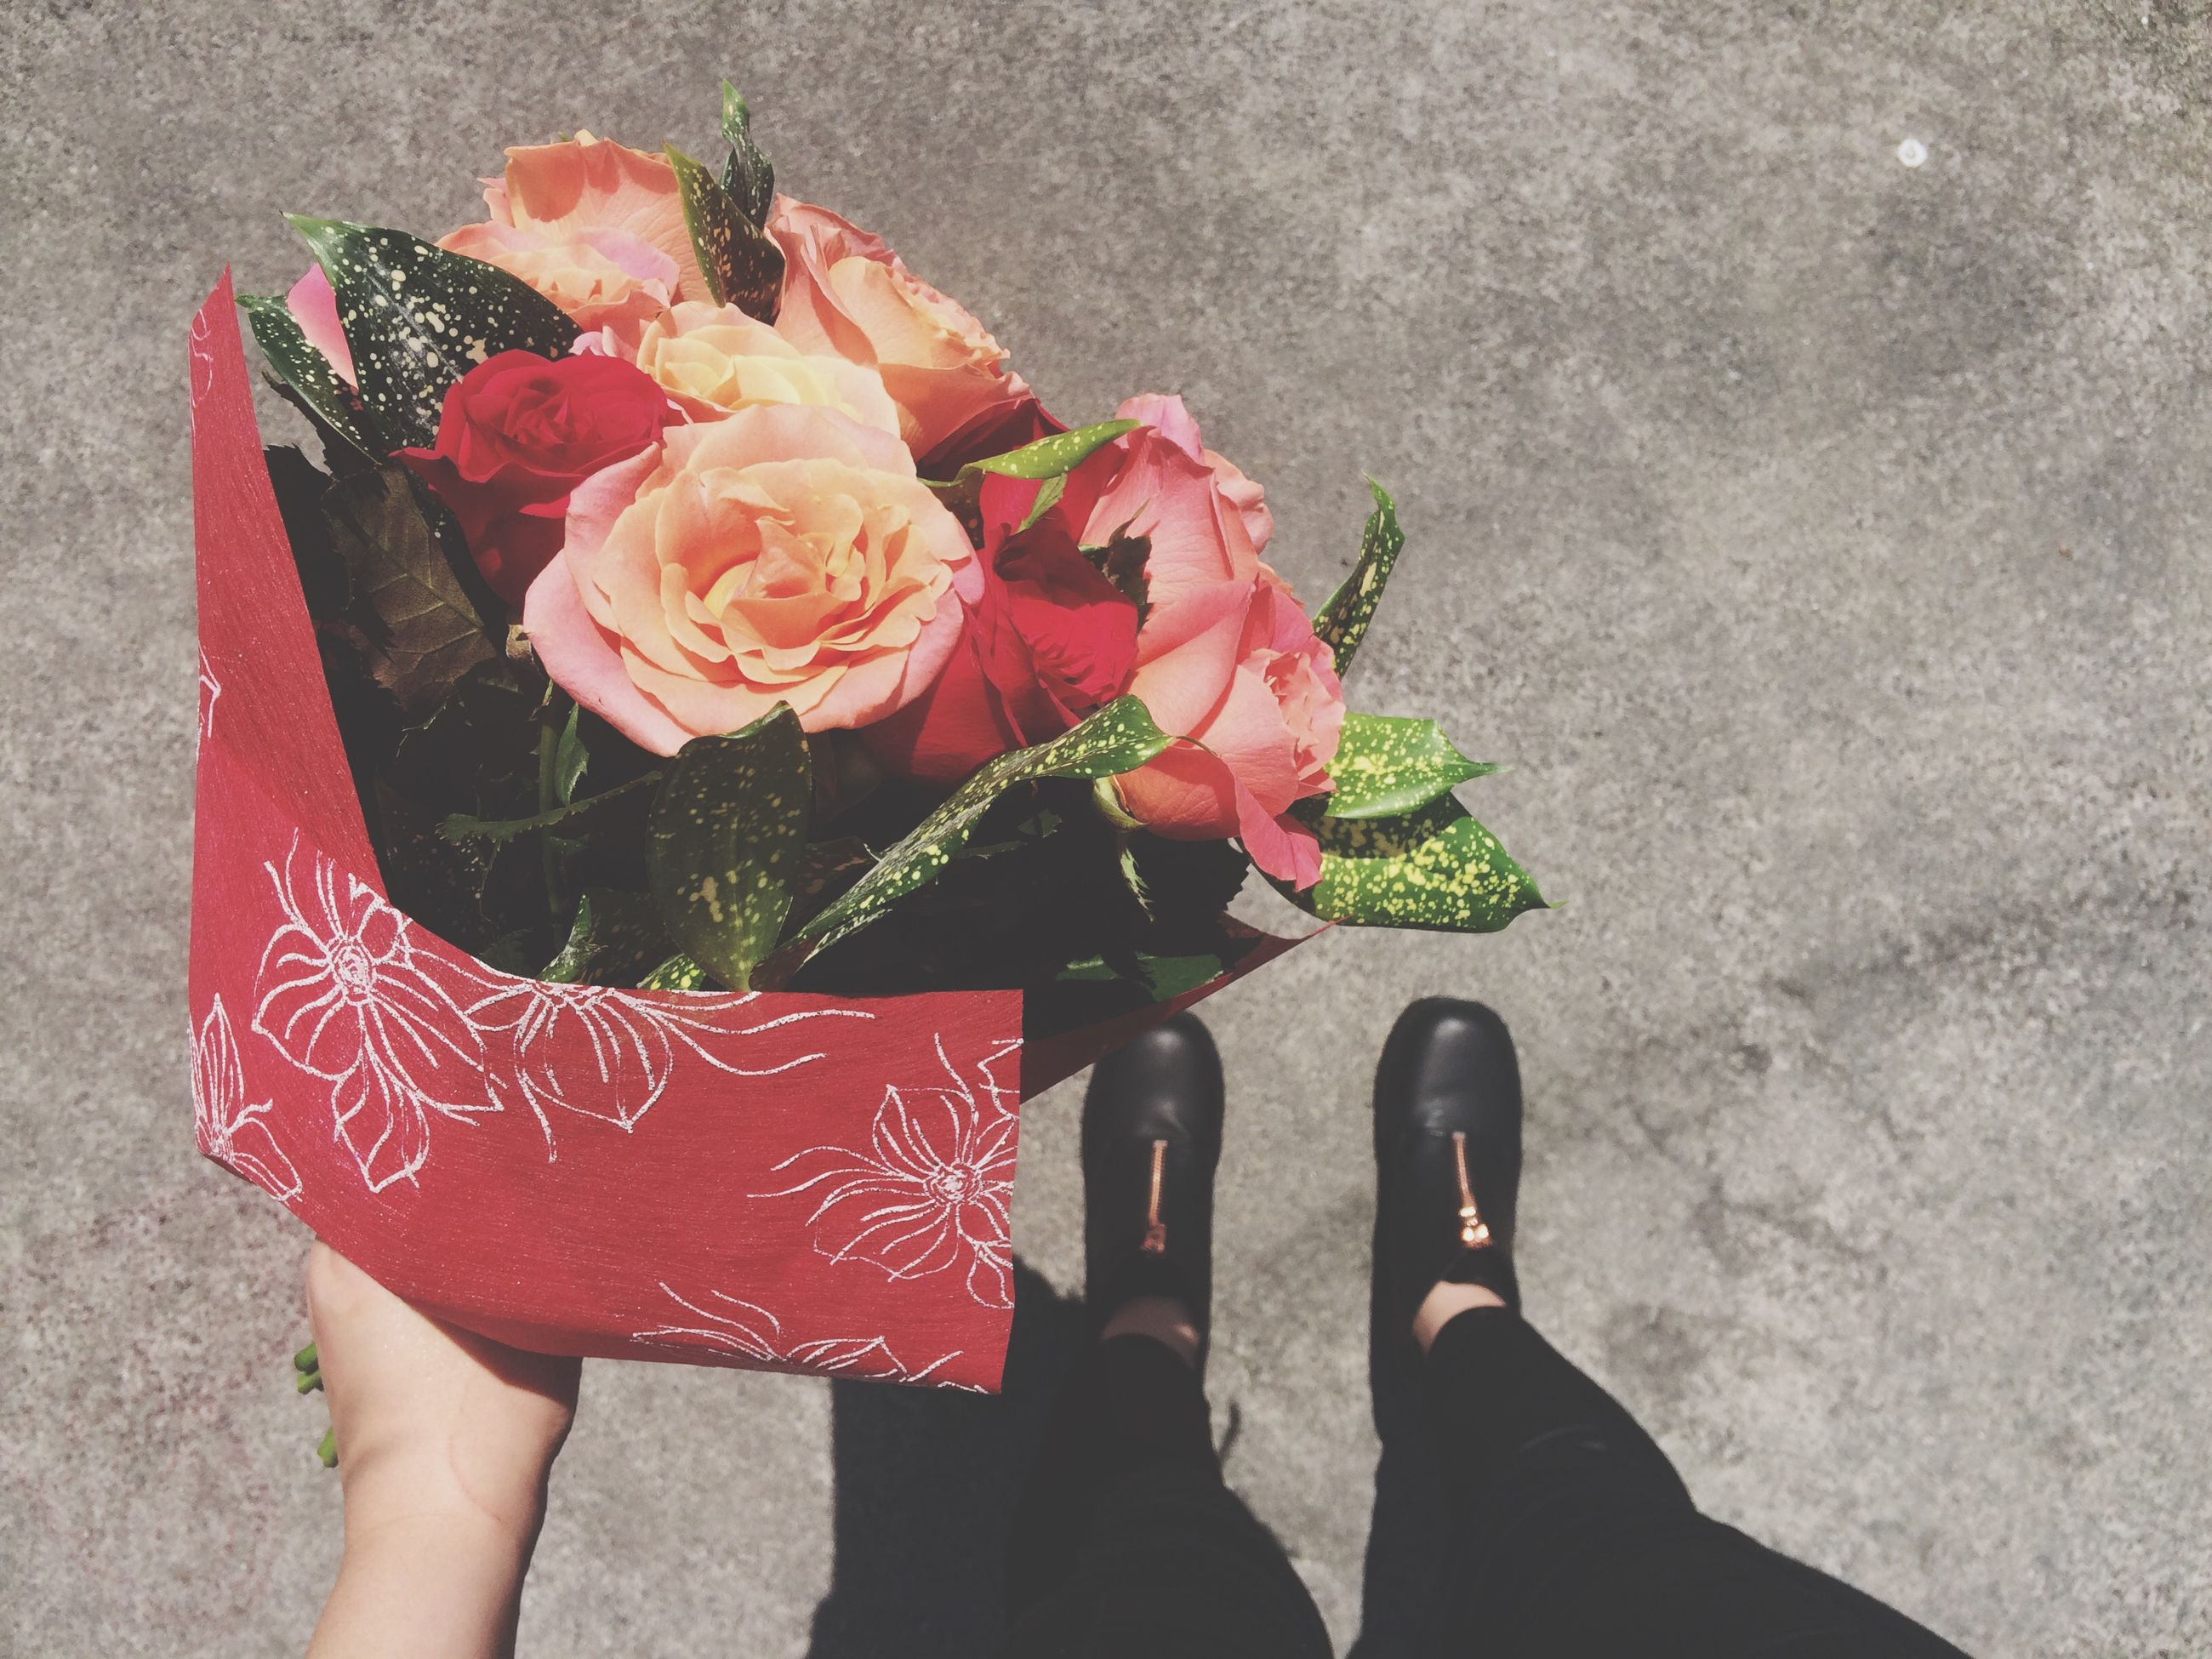 flower, personal perspective, high angle view, holding, low section, petal, freshness, red, lifestyles, person, leisure activity, standing, pink color, fragility, unrecognizable person